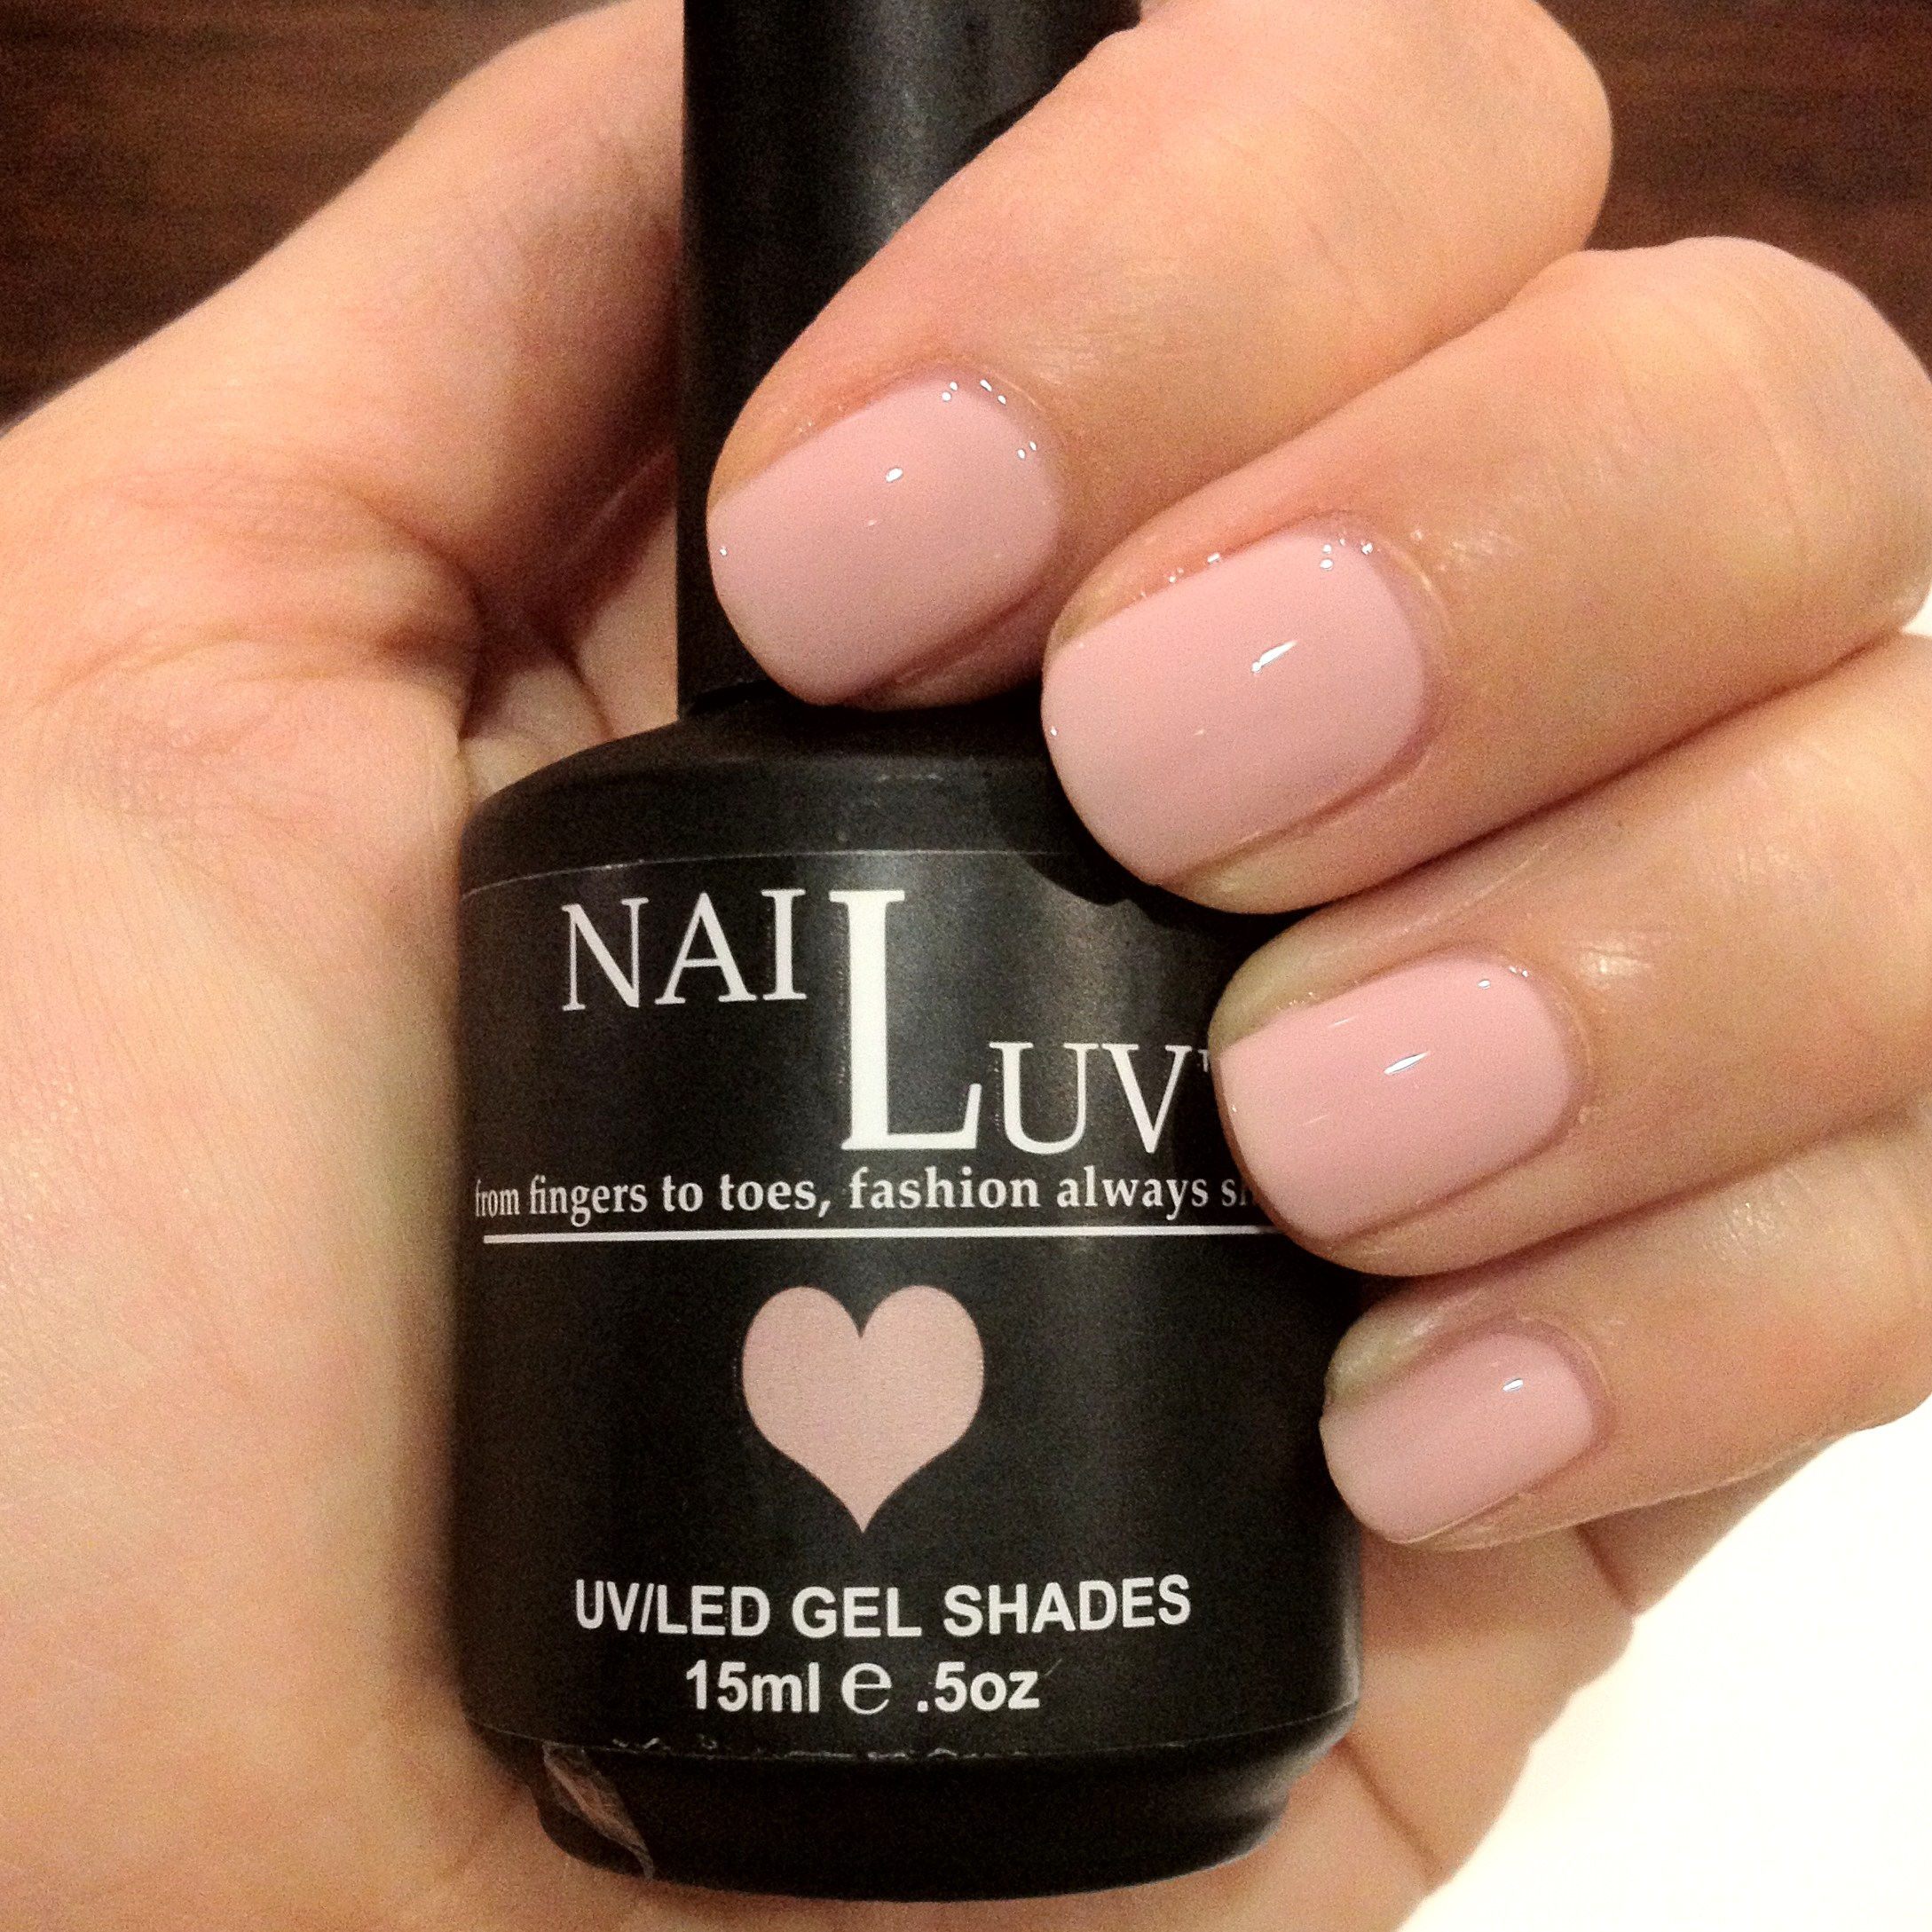 What tips do i need for gel nails at home - New Expression Nails